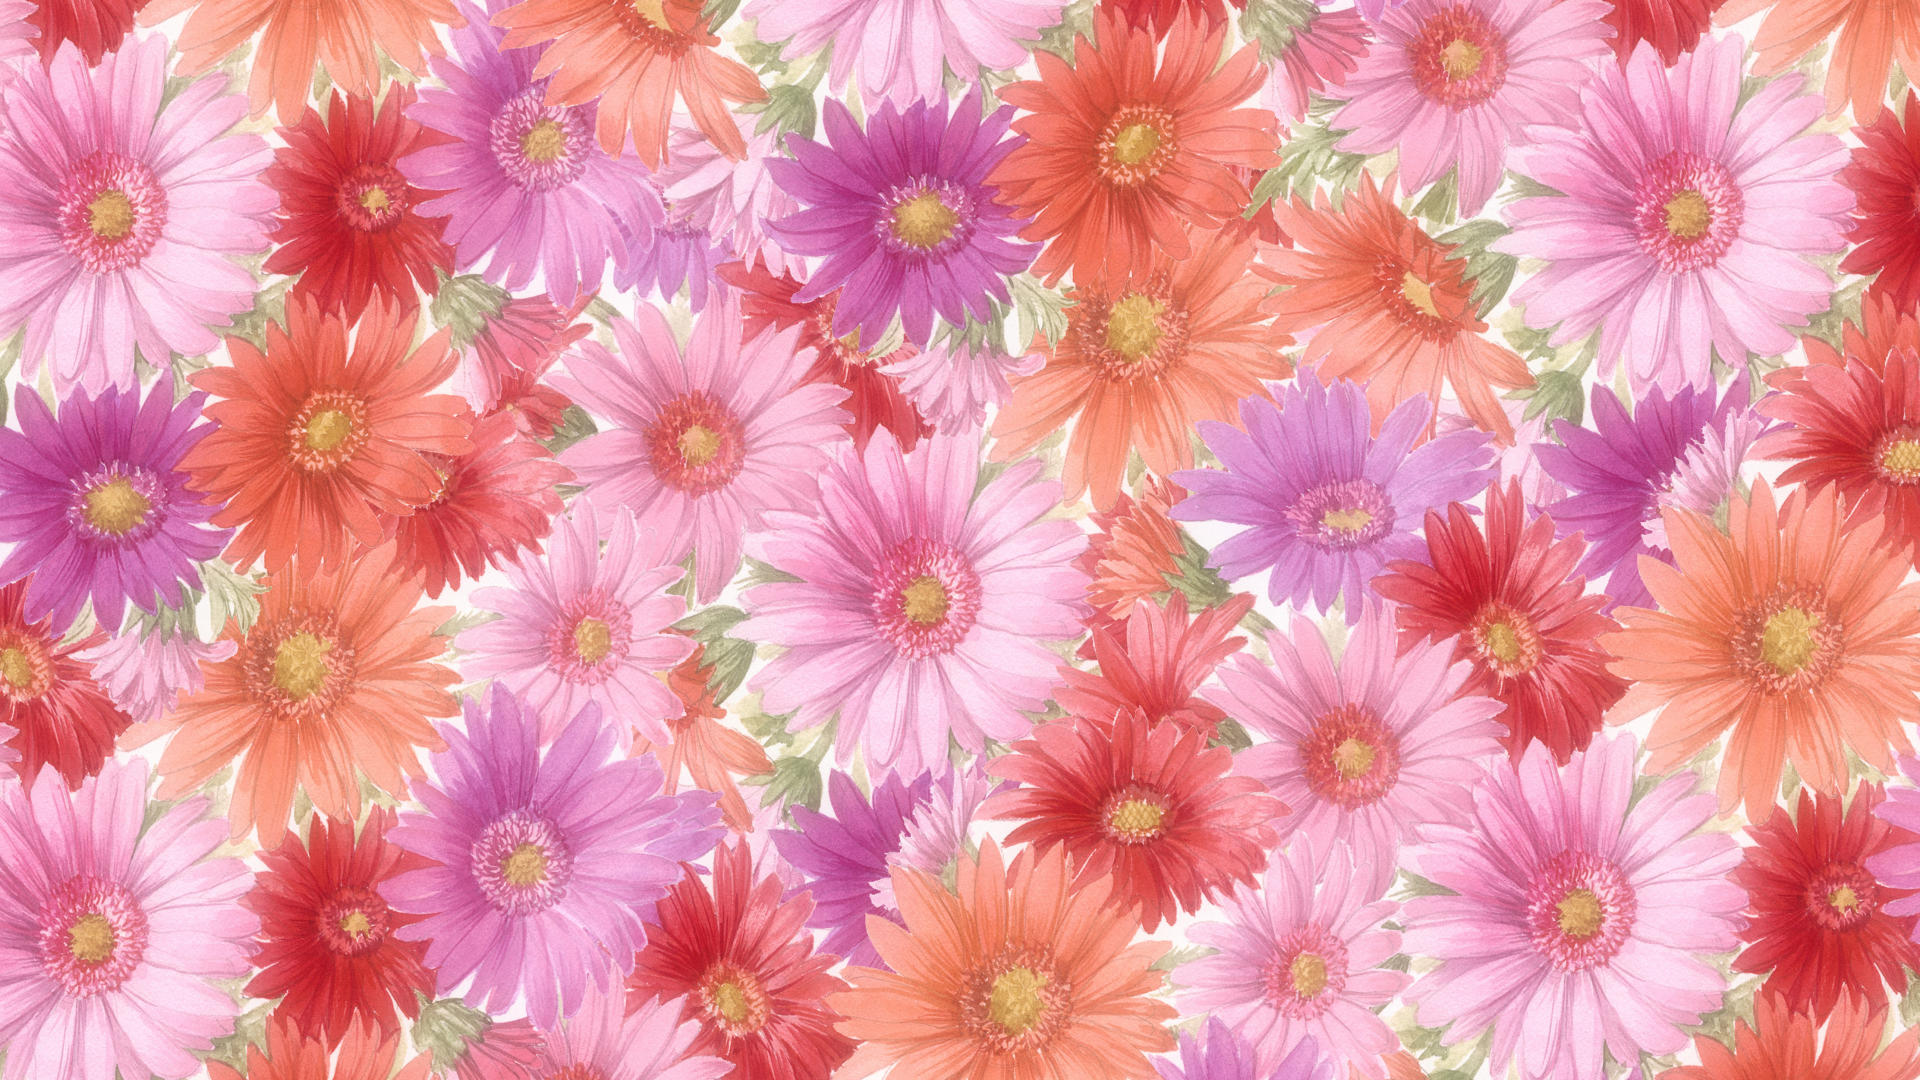 Widescreen High Resolution Free Flower Wallpaper